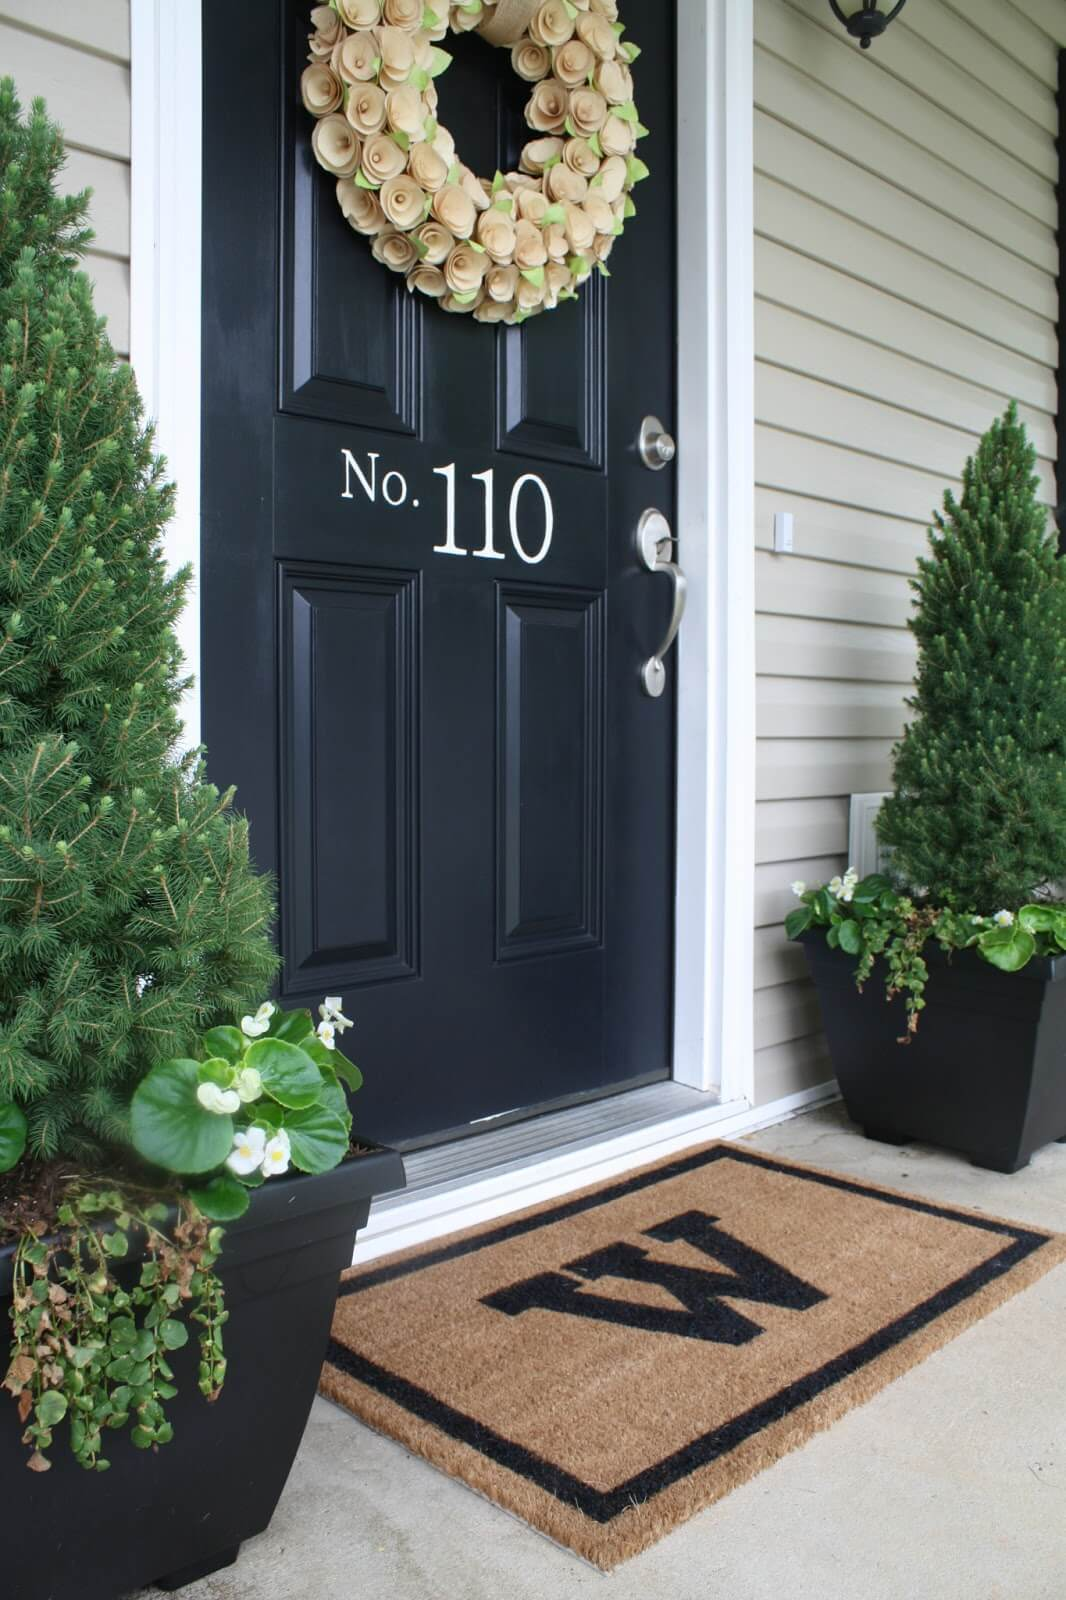 Subtle House Number for a Dark Front Door